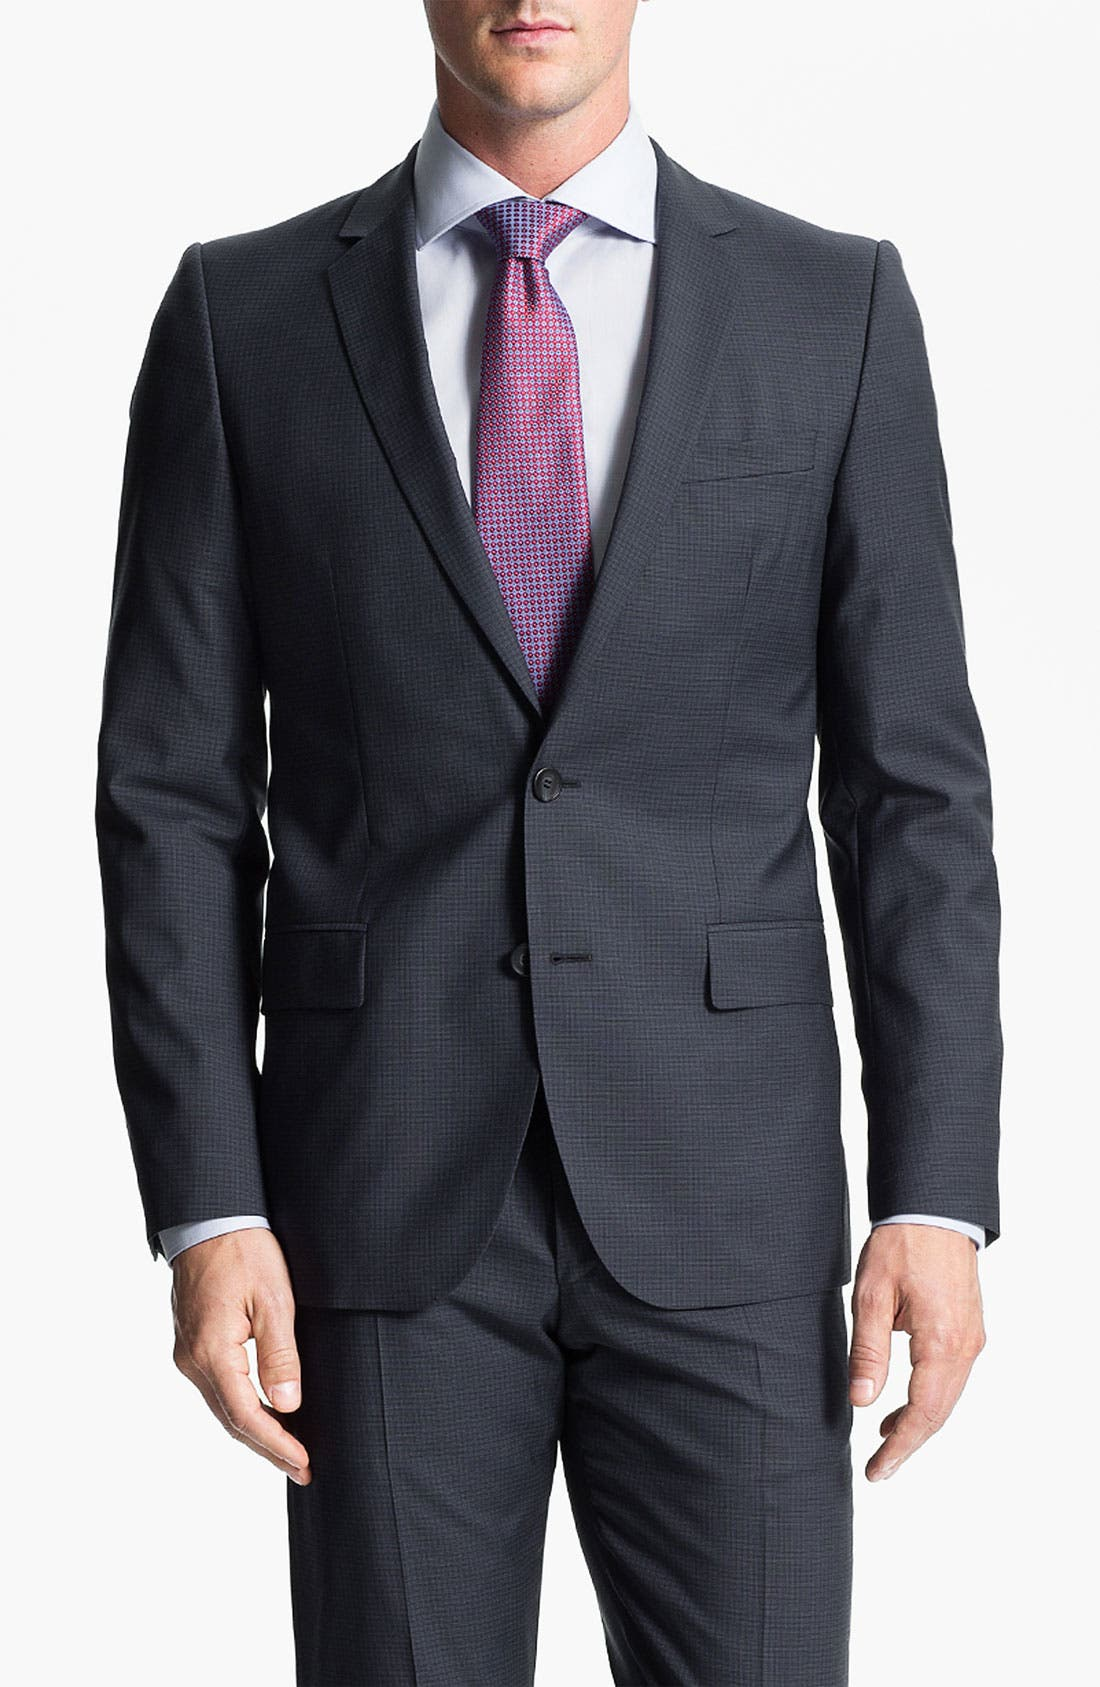 Alternate Image 1 Selected - HUGO 'Amaro/Heise' Trim Fit Suit